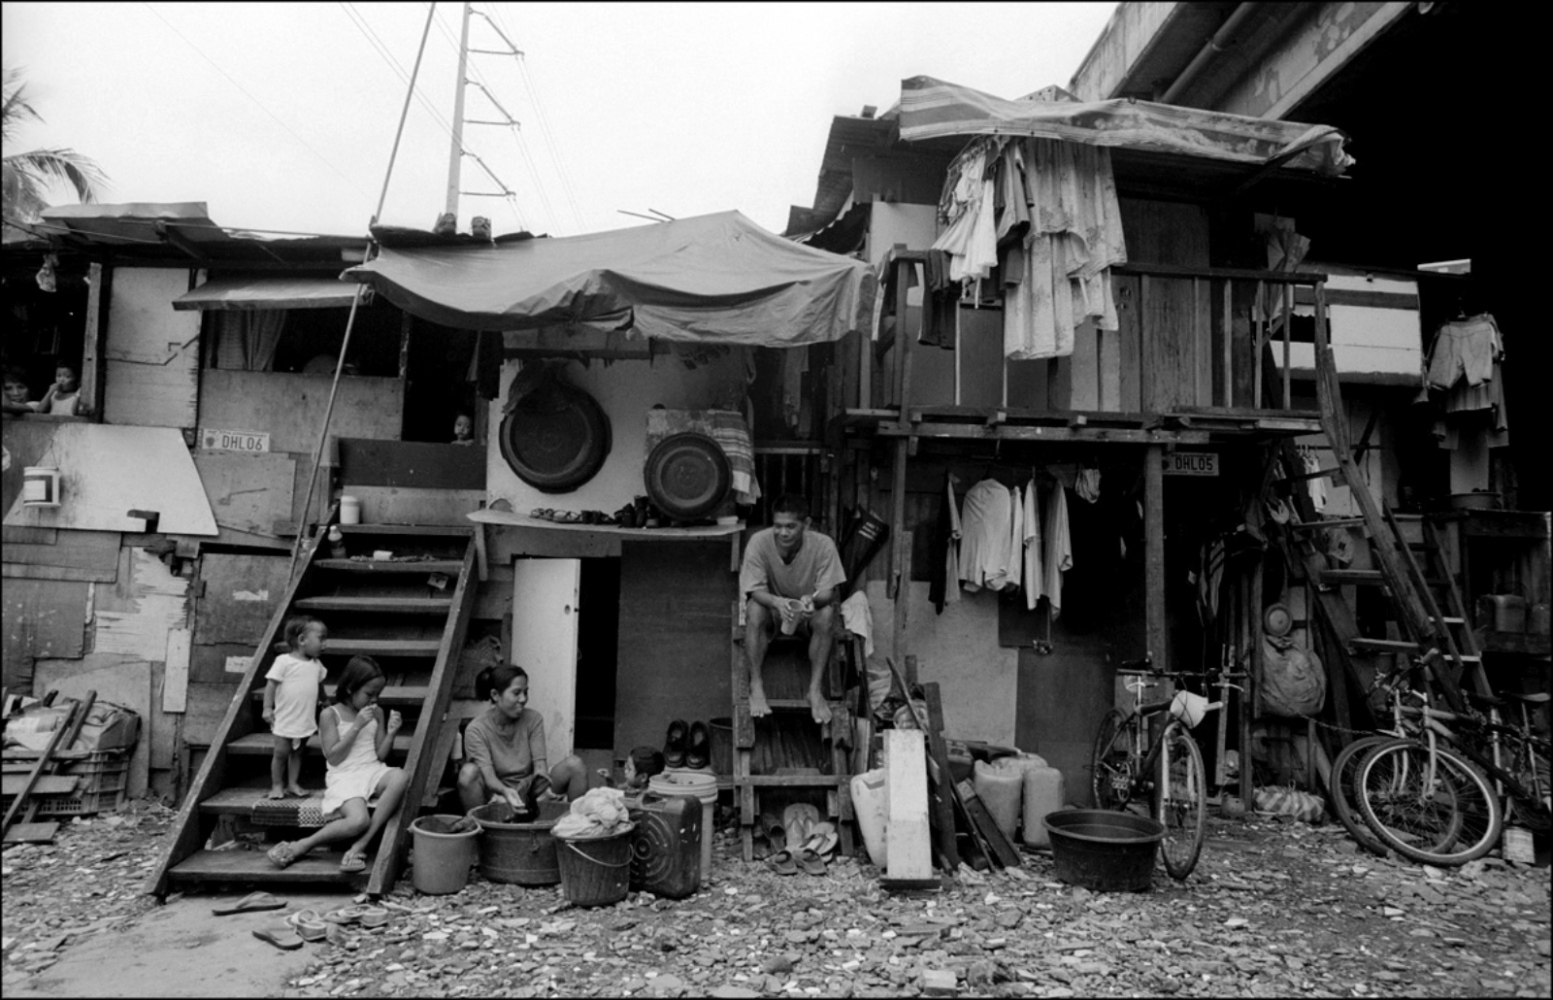 A Family and Their Home, San Andreas Bridge, Manila, Philippines, November 2005